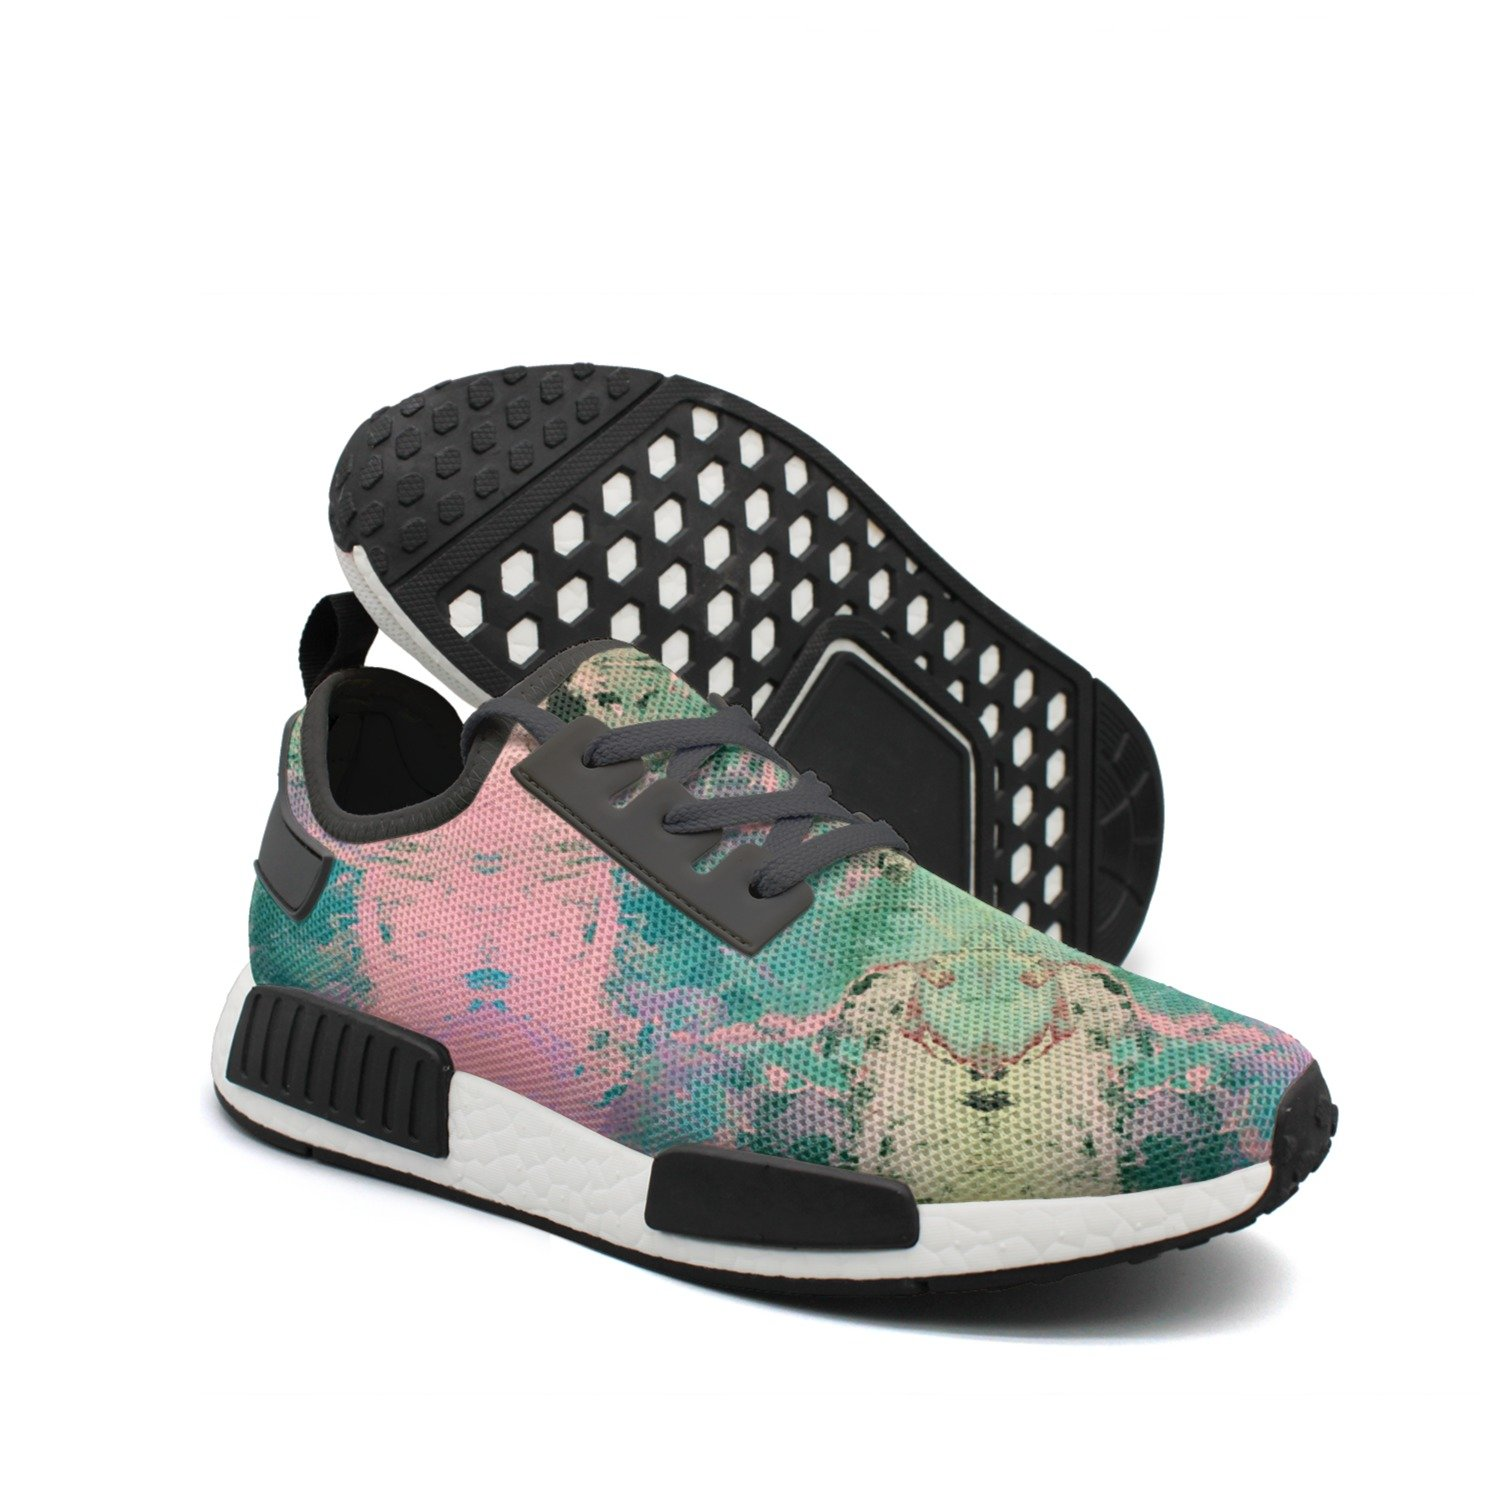 Men's Casual Fashion Sneaker Abstract Watercolor Art Breathable Lightweight Running Shoes